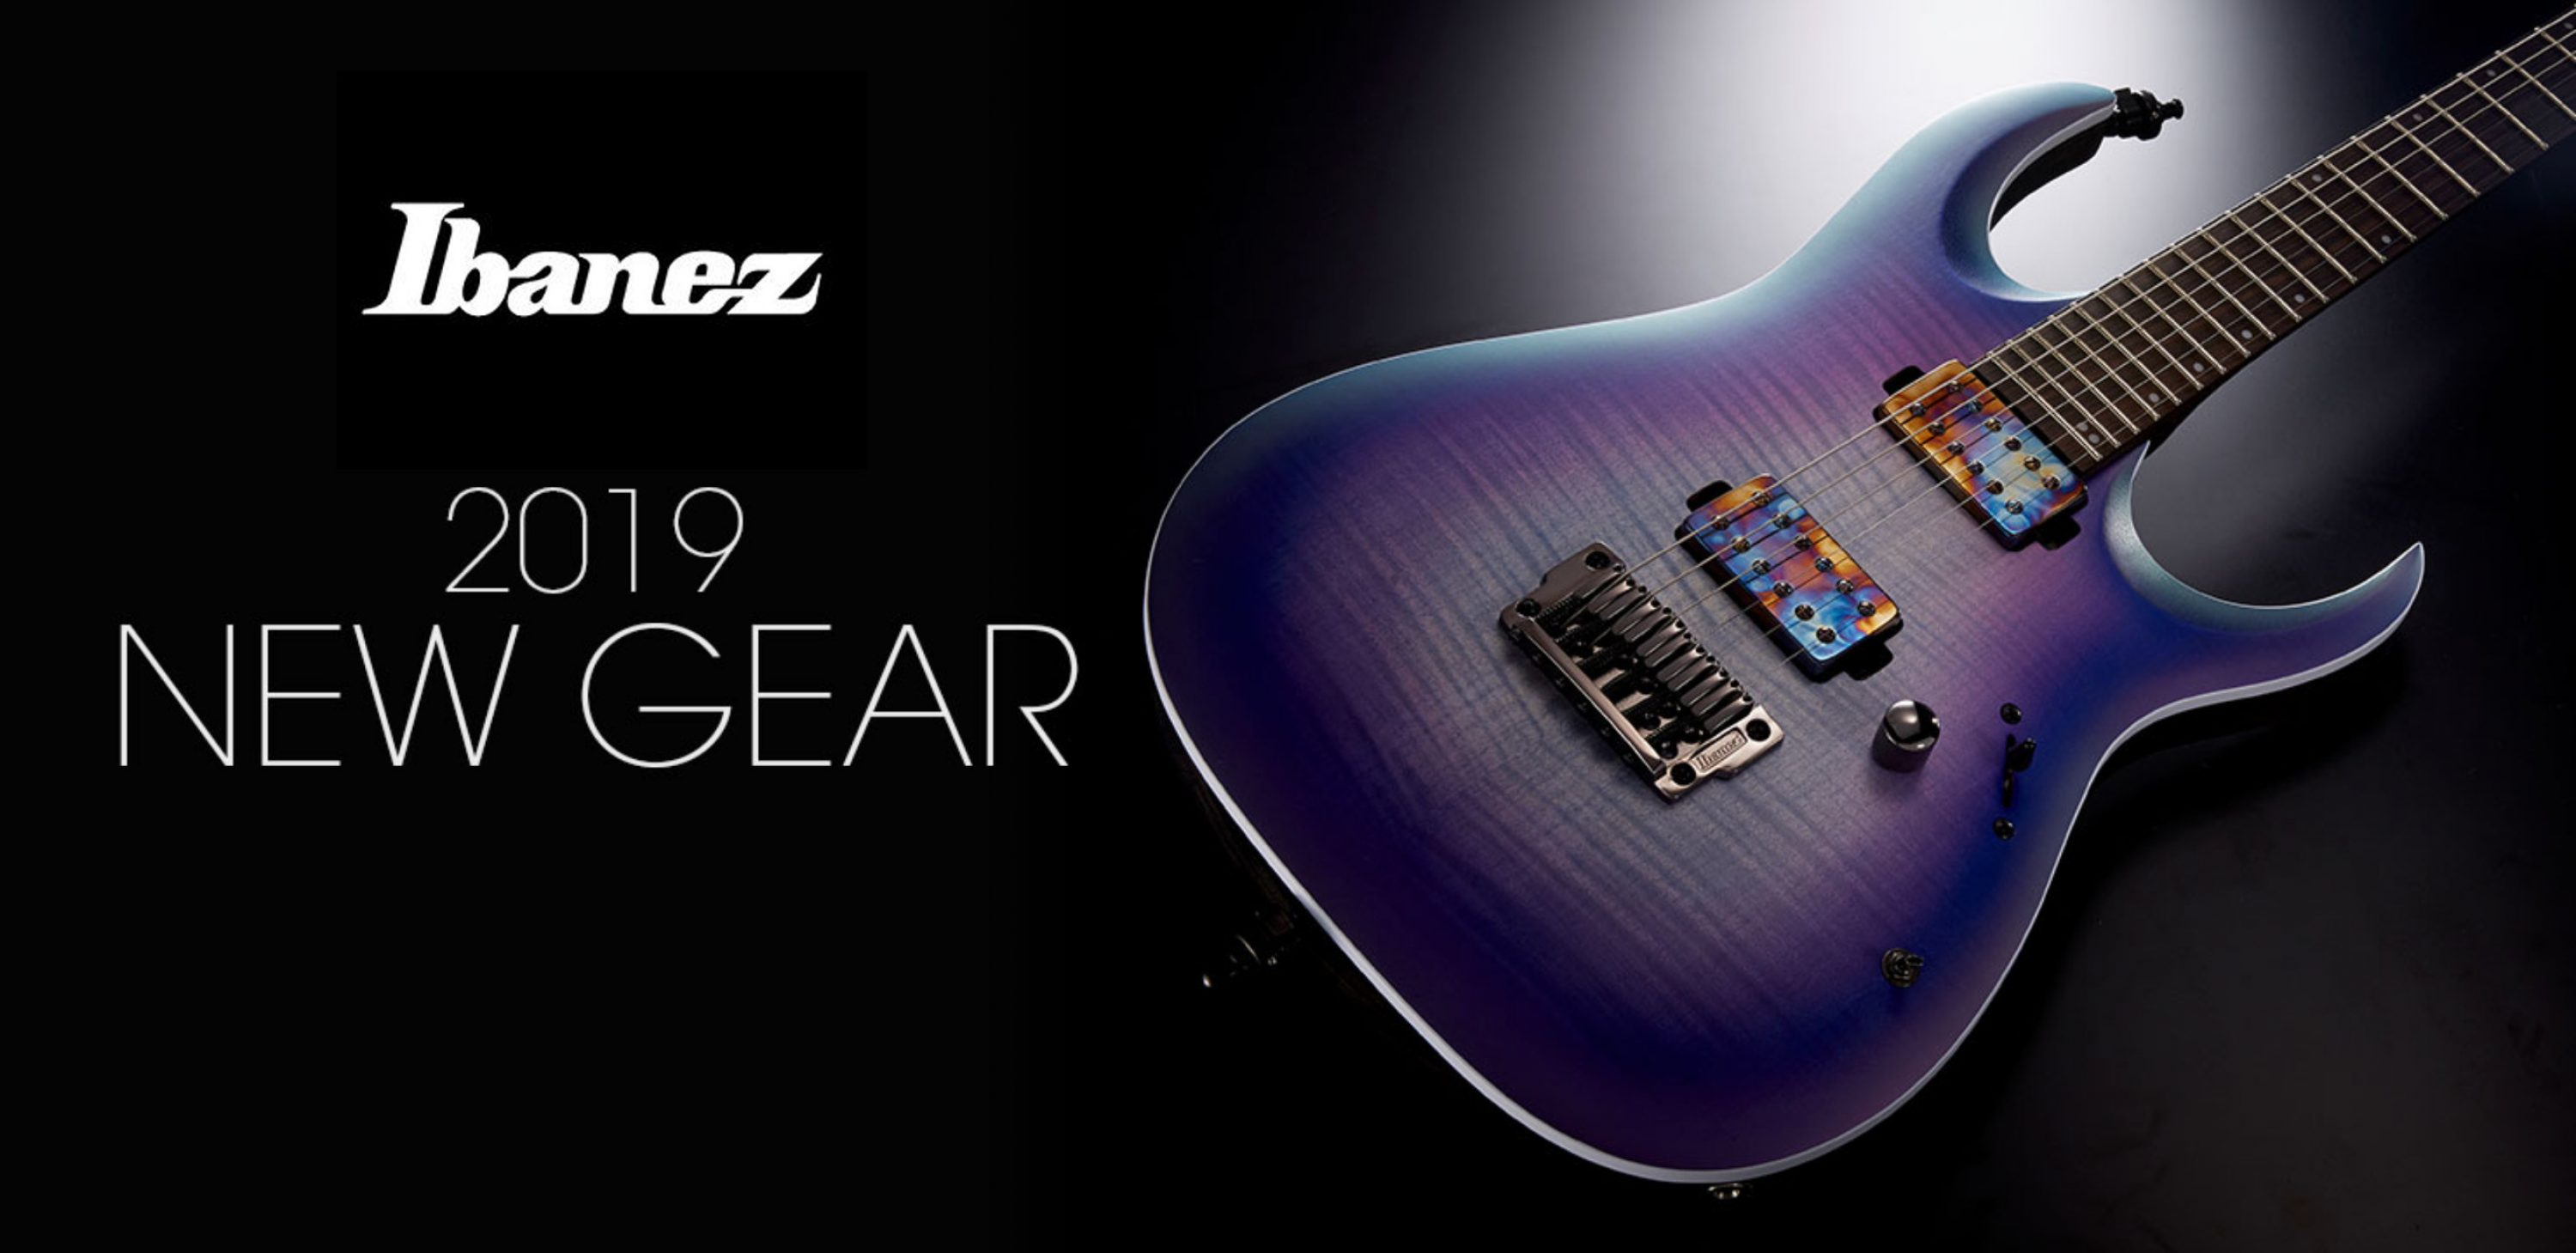 Ibanez Just Announced Over 70 New Guitars And Accessories For 2019